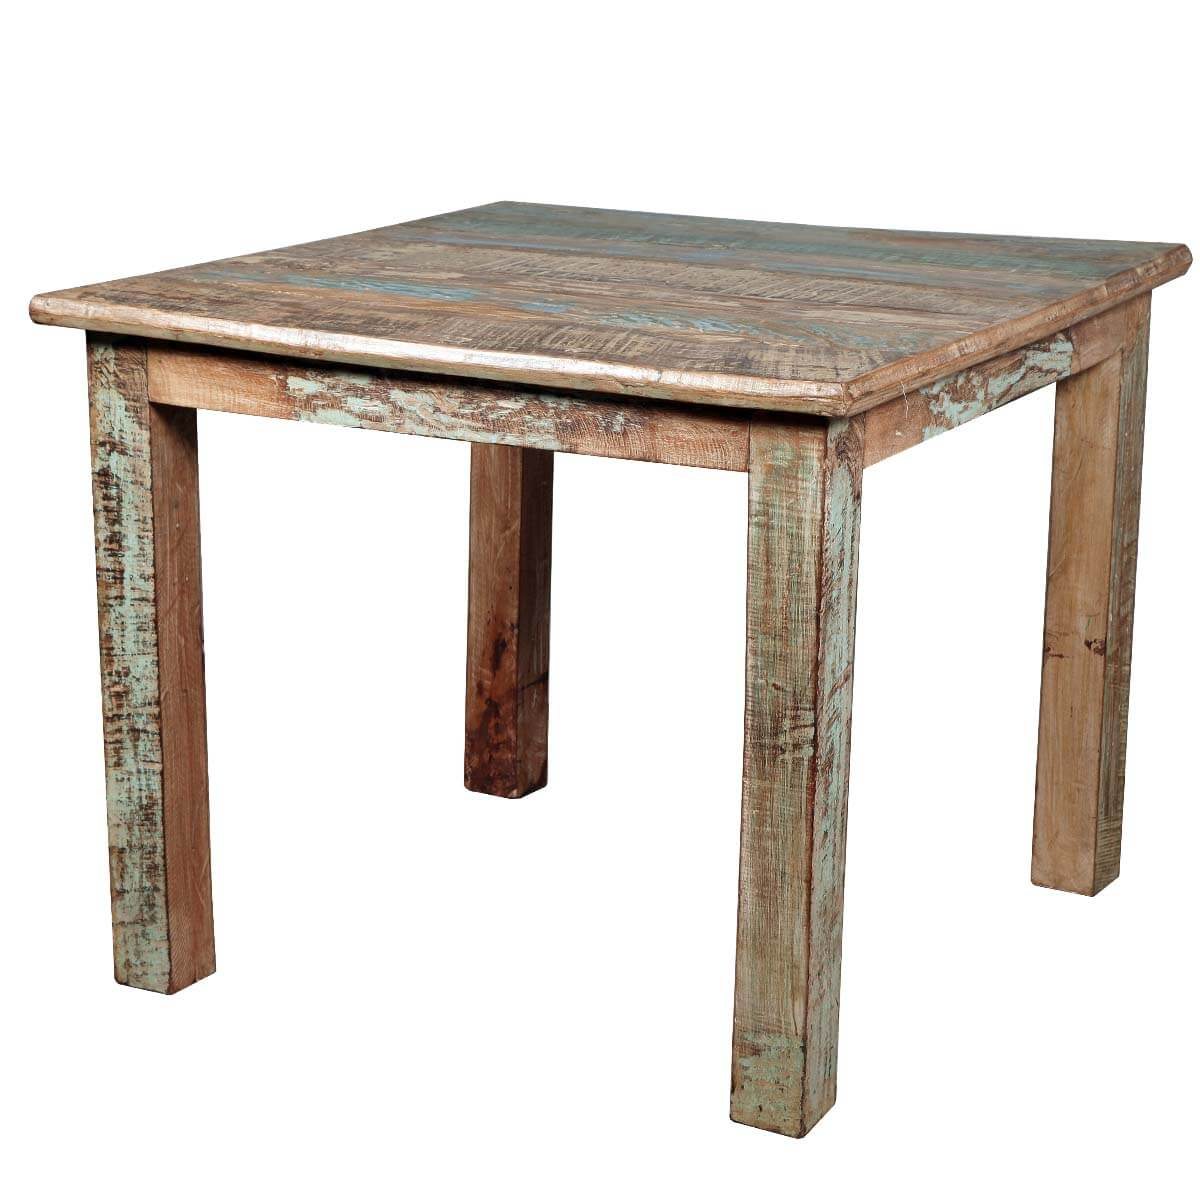 Rustic reclaimed wood distressed small kitchen dining table Rustic wood dining table